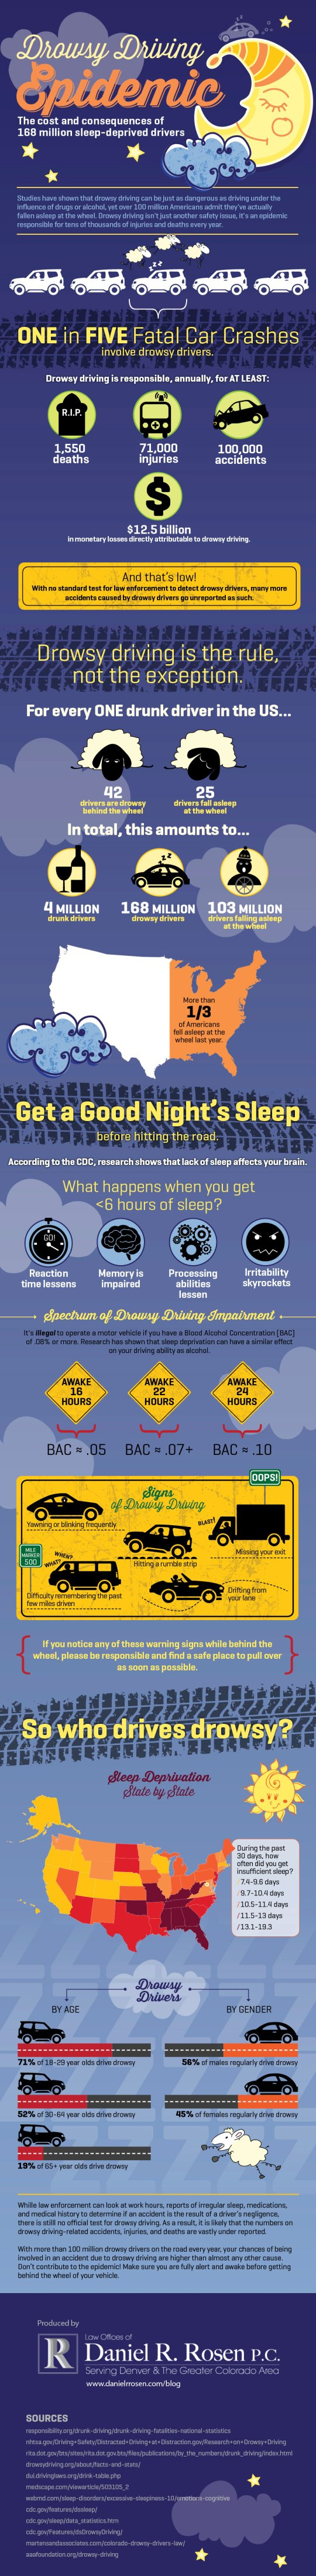 Drowsy Driving Epidemic Infographic